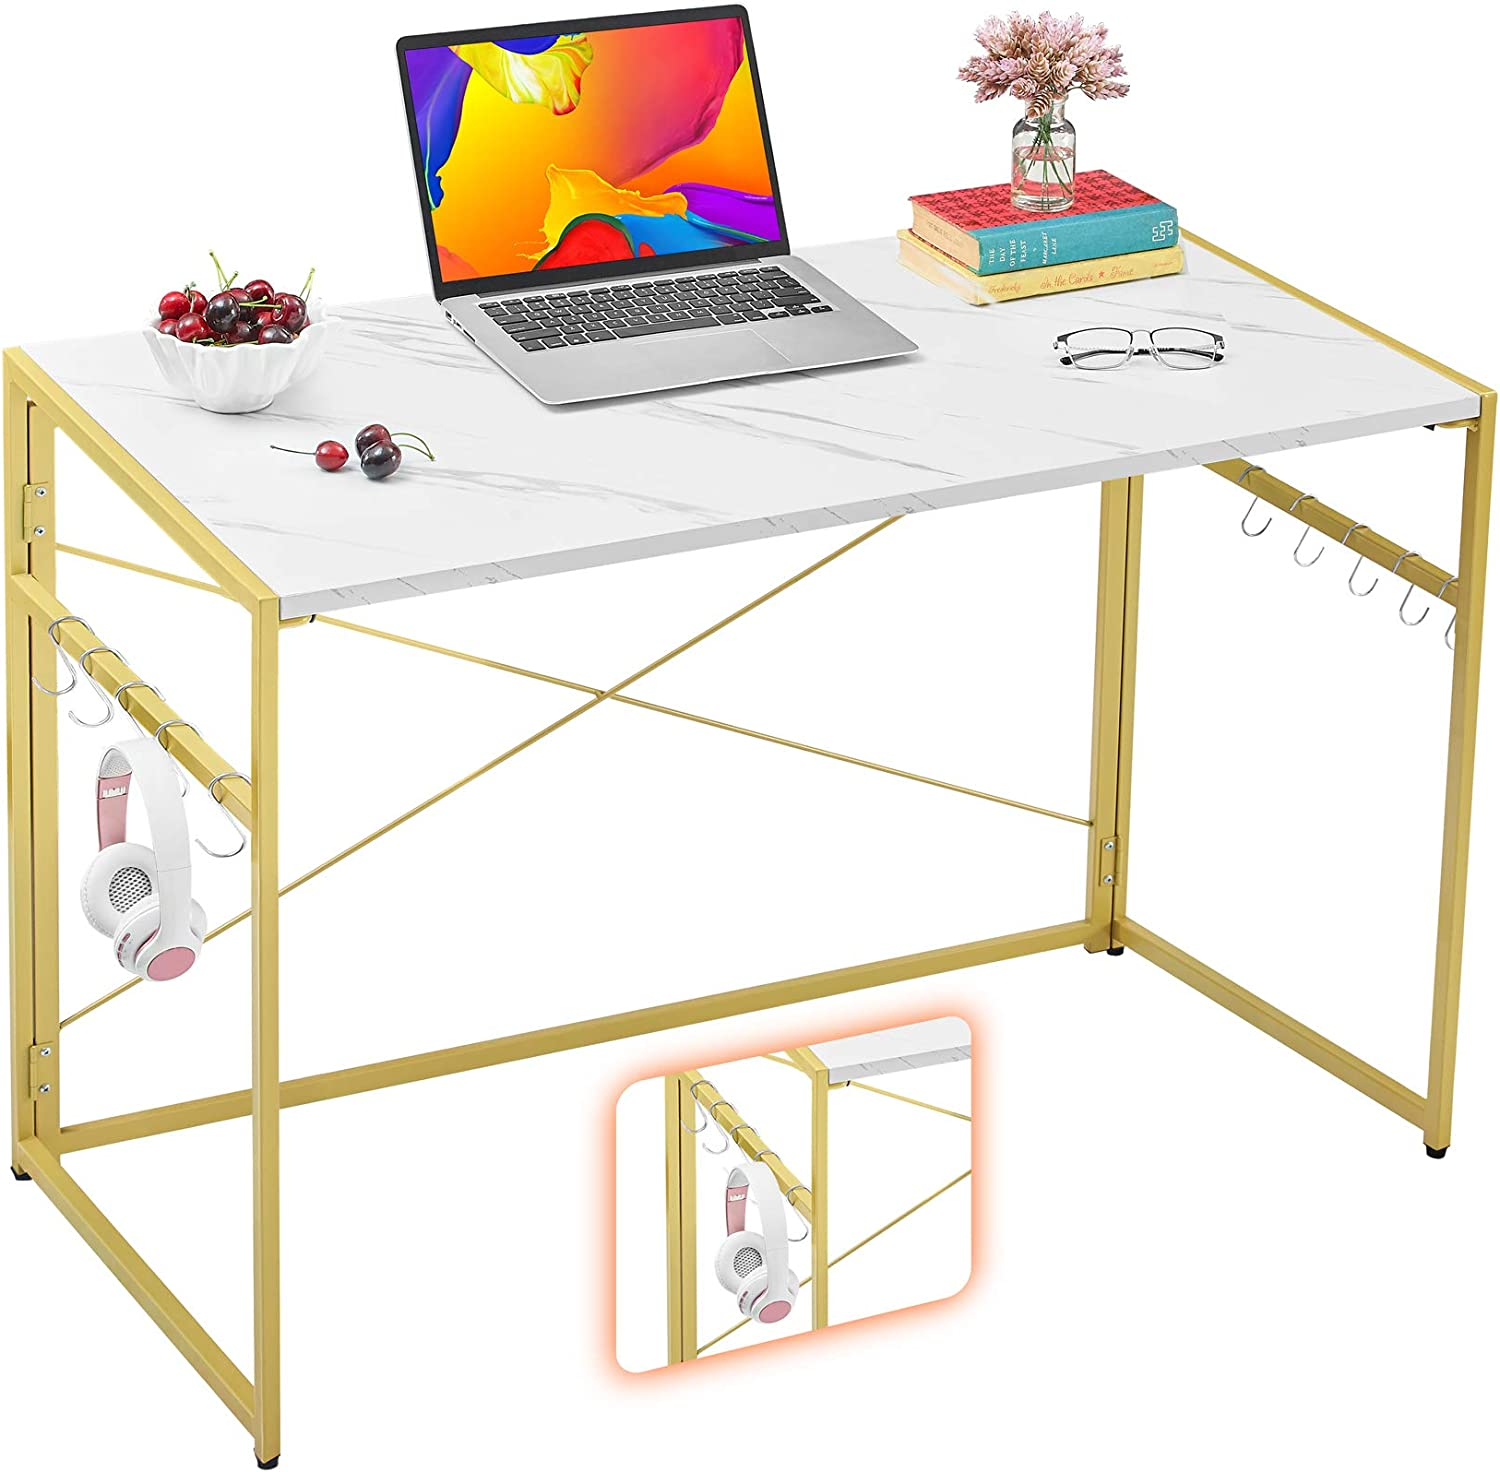 """Mr IRONSTONE 39.4"""" Product Folding Writing Computer San Diego Mall Easy Desk"""